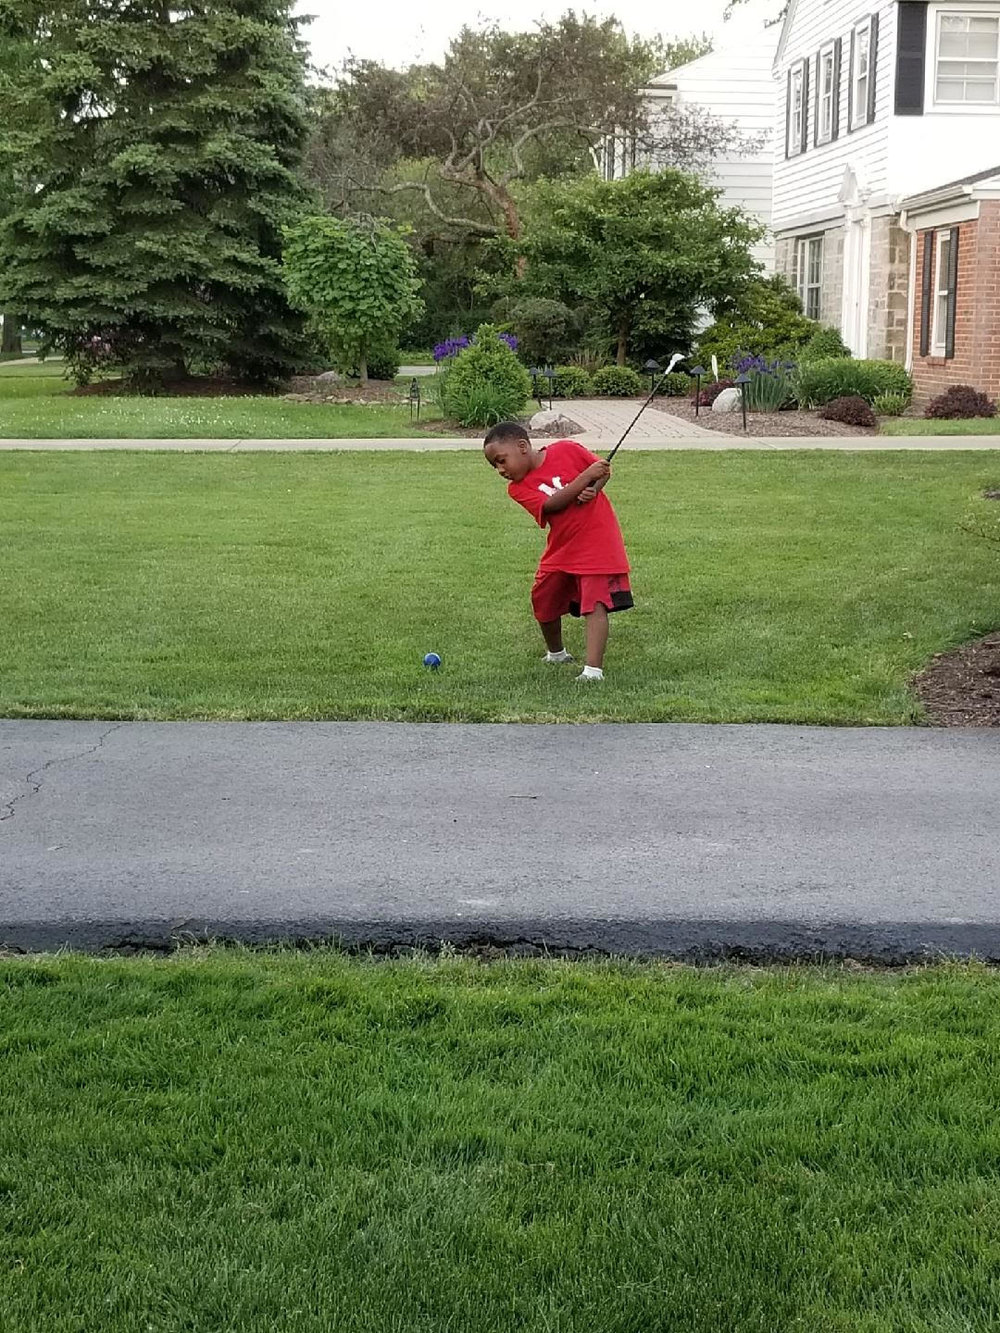 Charlie Sifford's great grandson, Gregory, practicing his swing. So glad Gregory likes CHARLIE TAKES HIS SHOT!